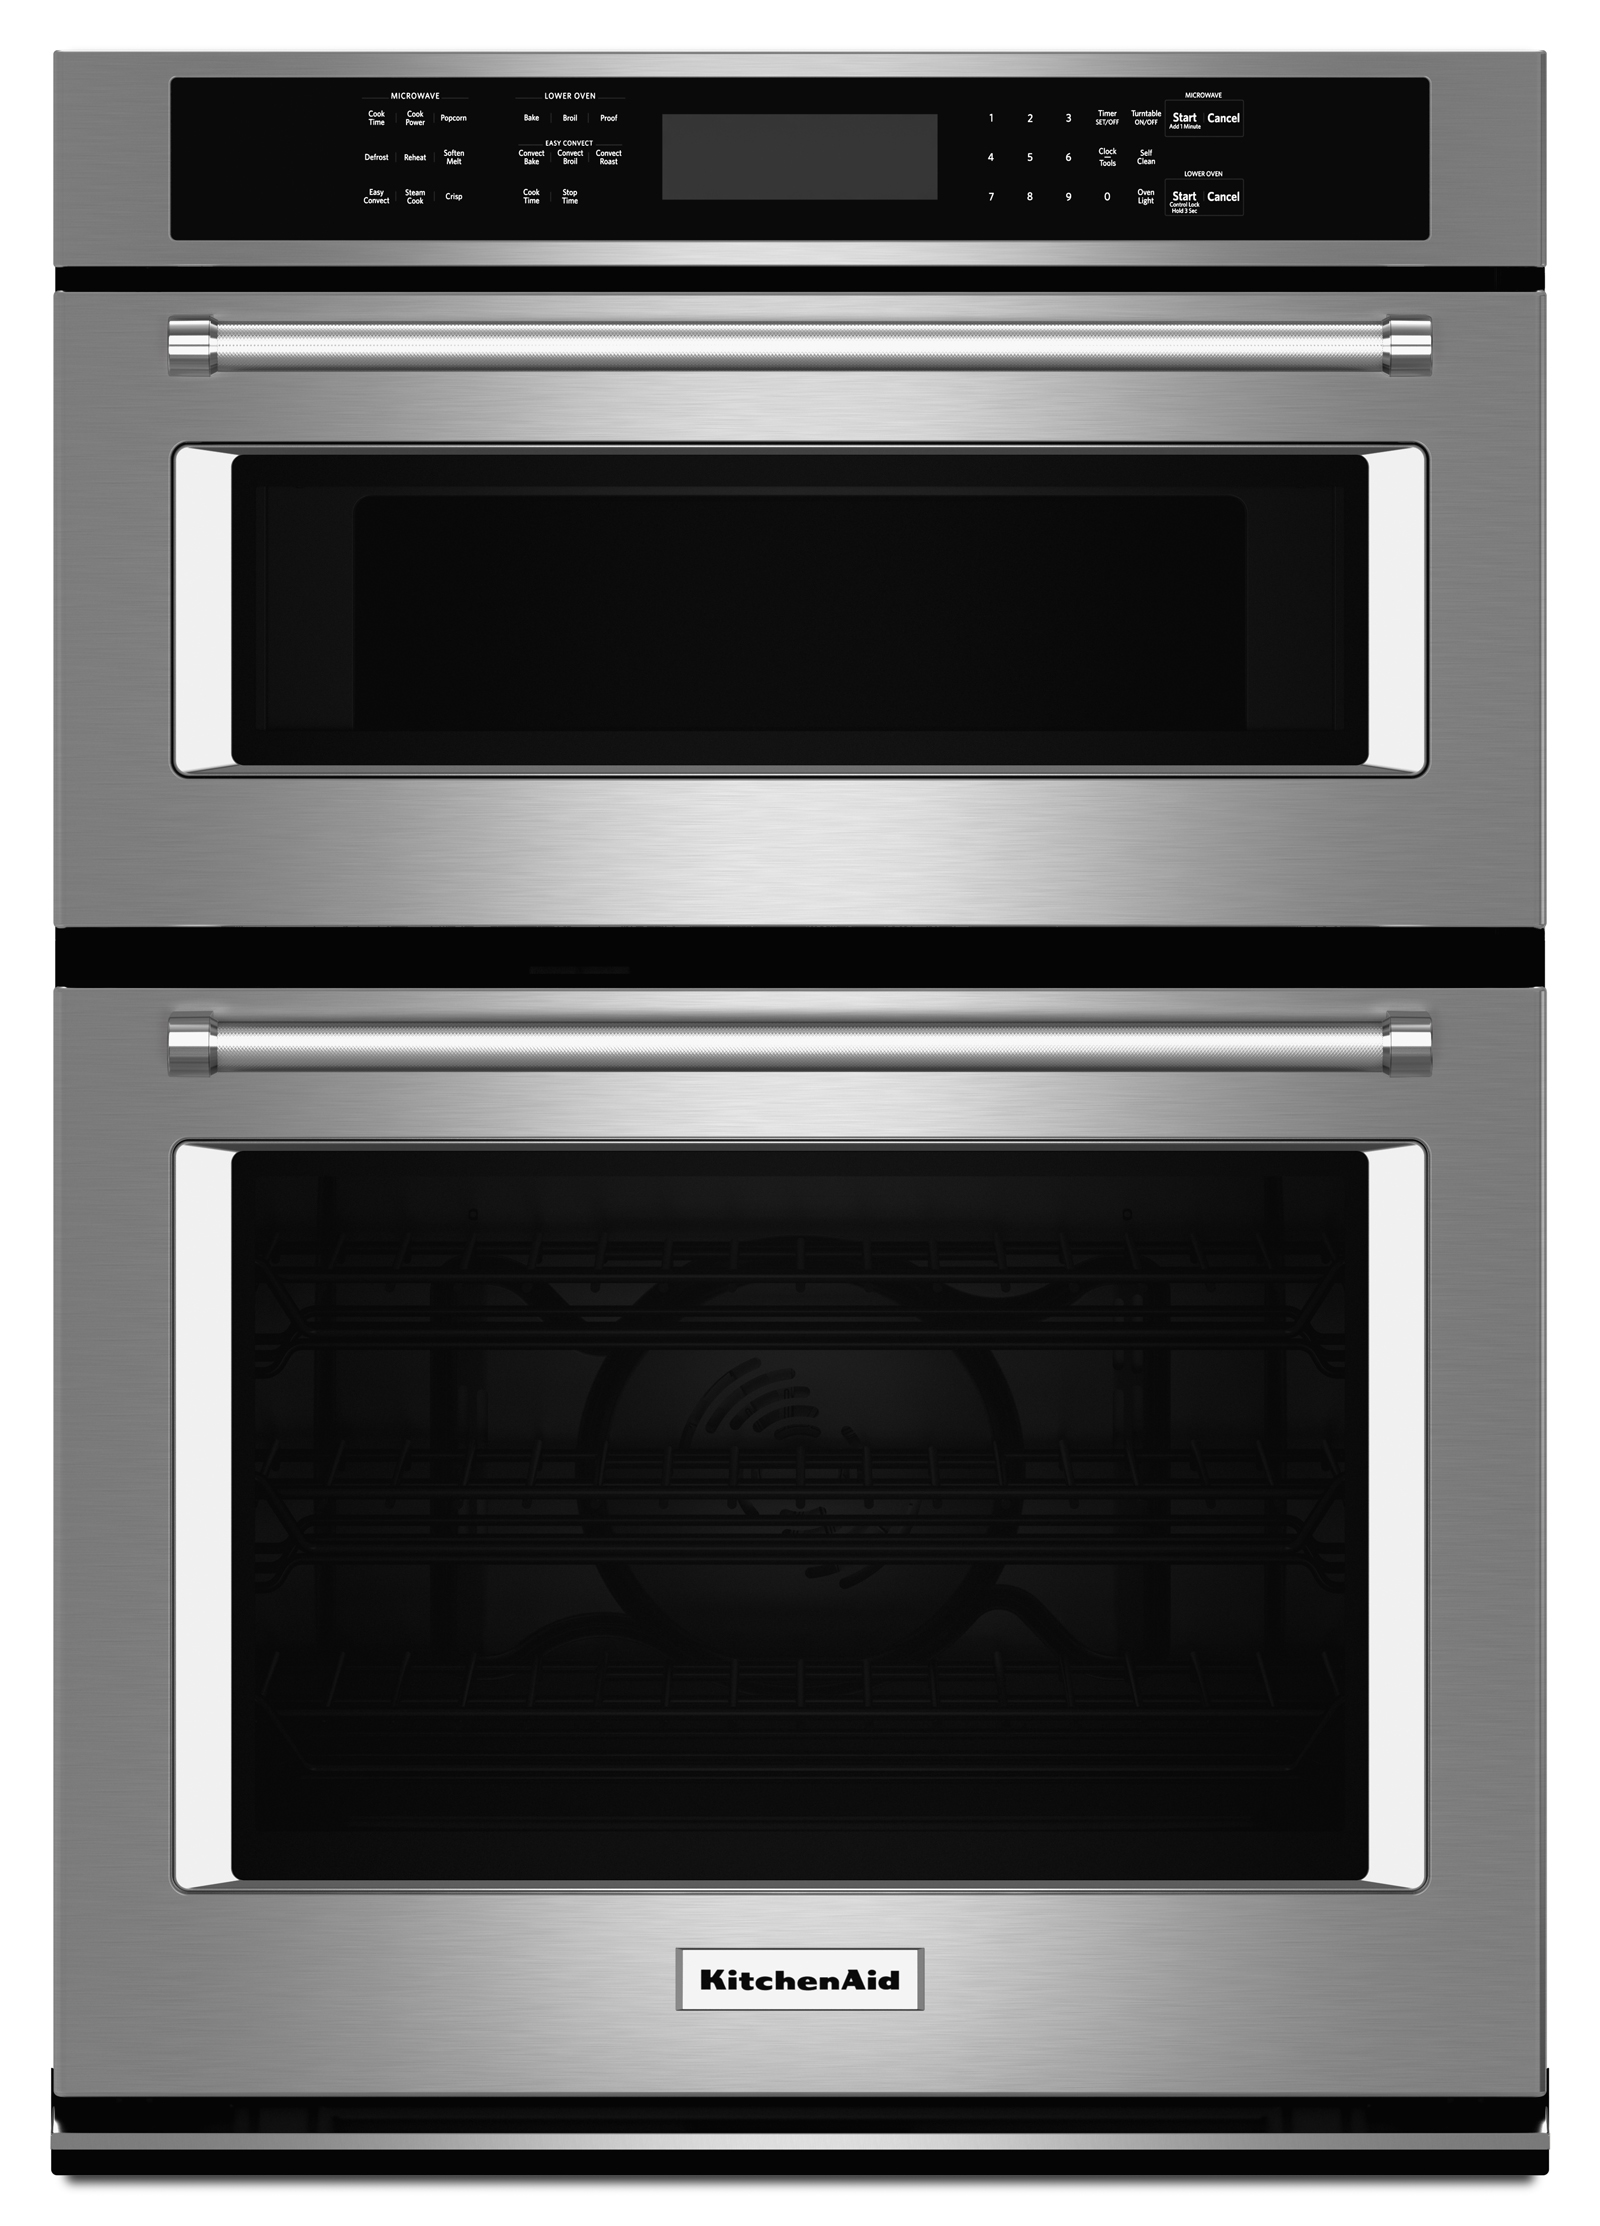 KitchenAid KOCE507ESS 27 Double Wall Oven w/Even-Heat™ True Convection - Stainless Steel